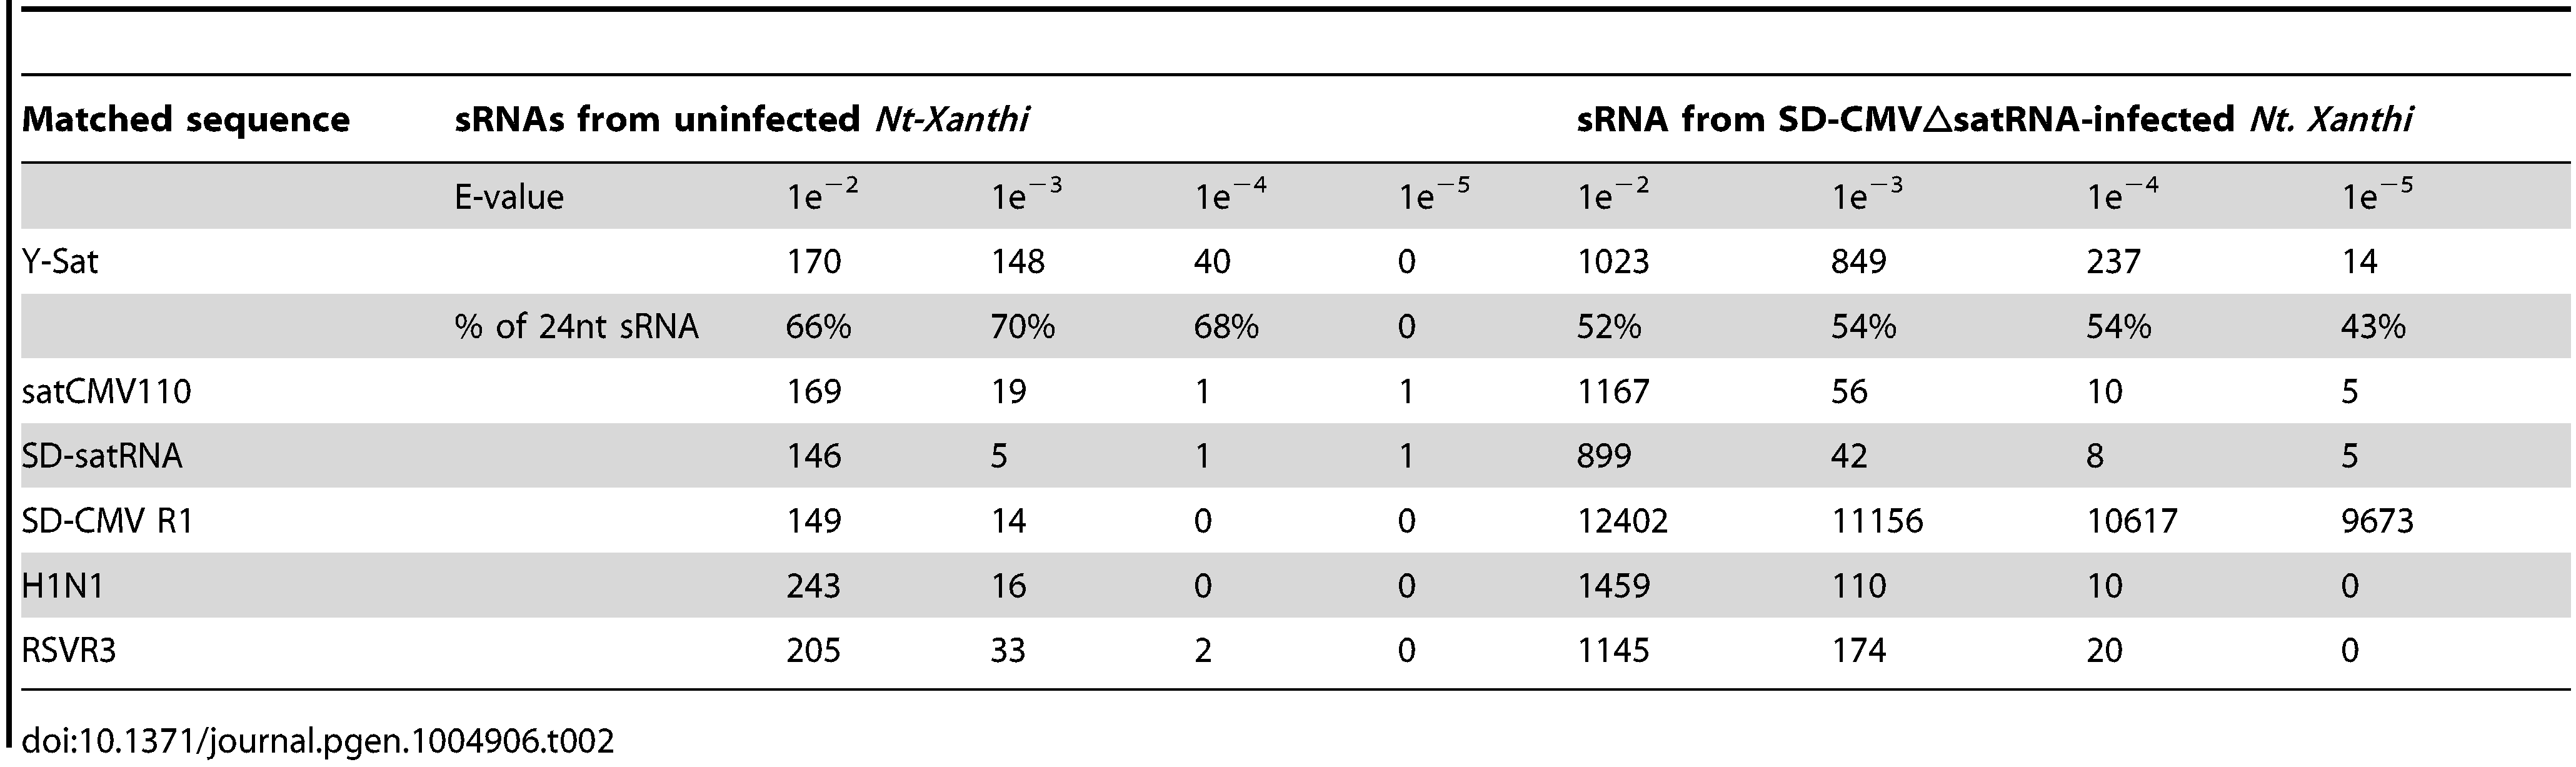 Number of unique sRNA sequence hits to target sequence under different stringency of sequence match (E-value).